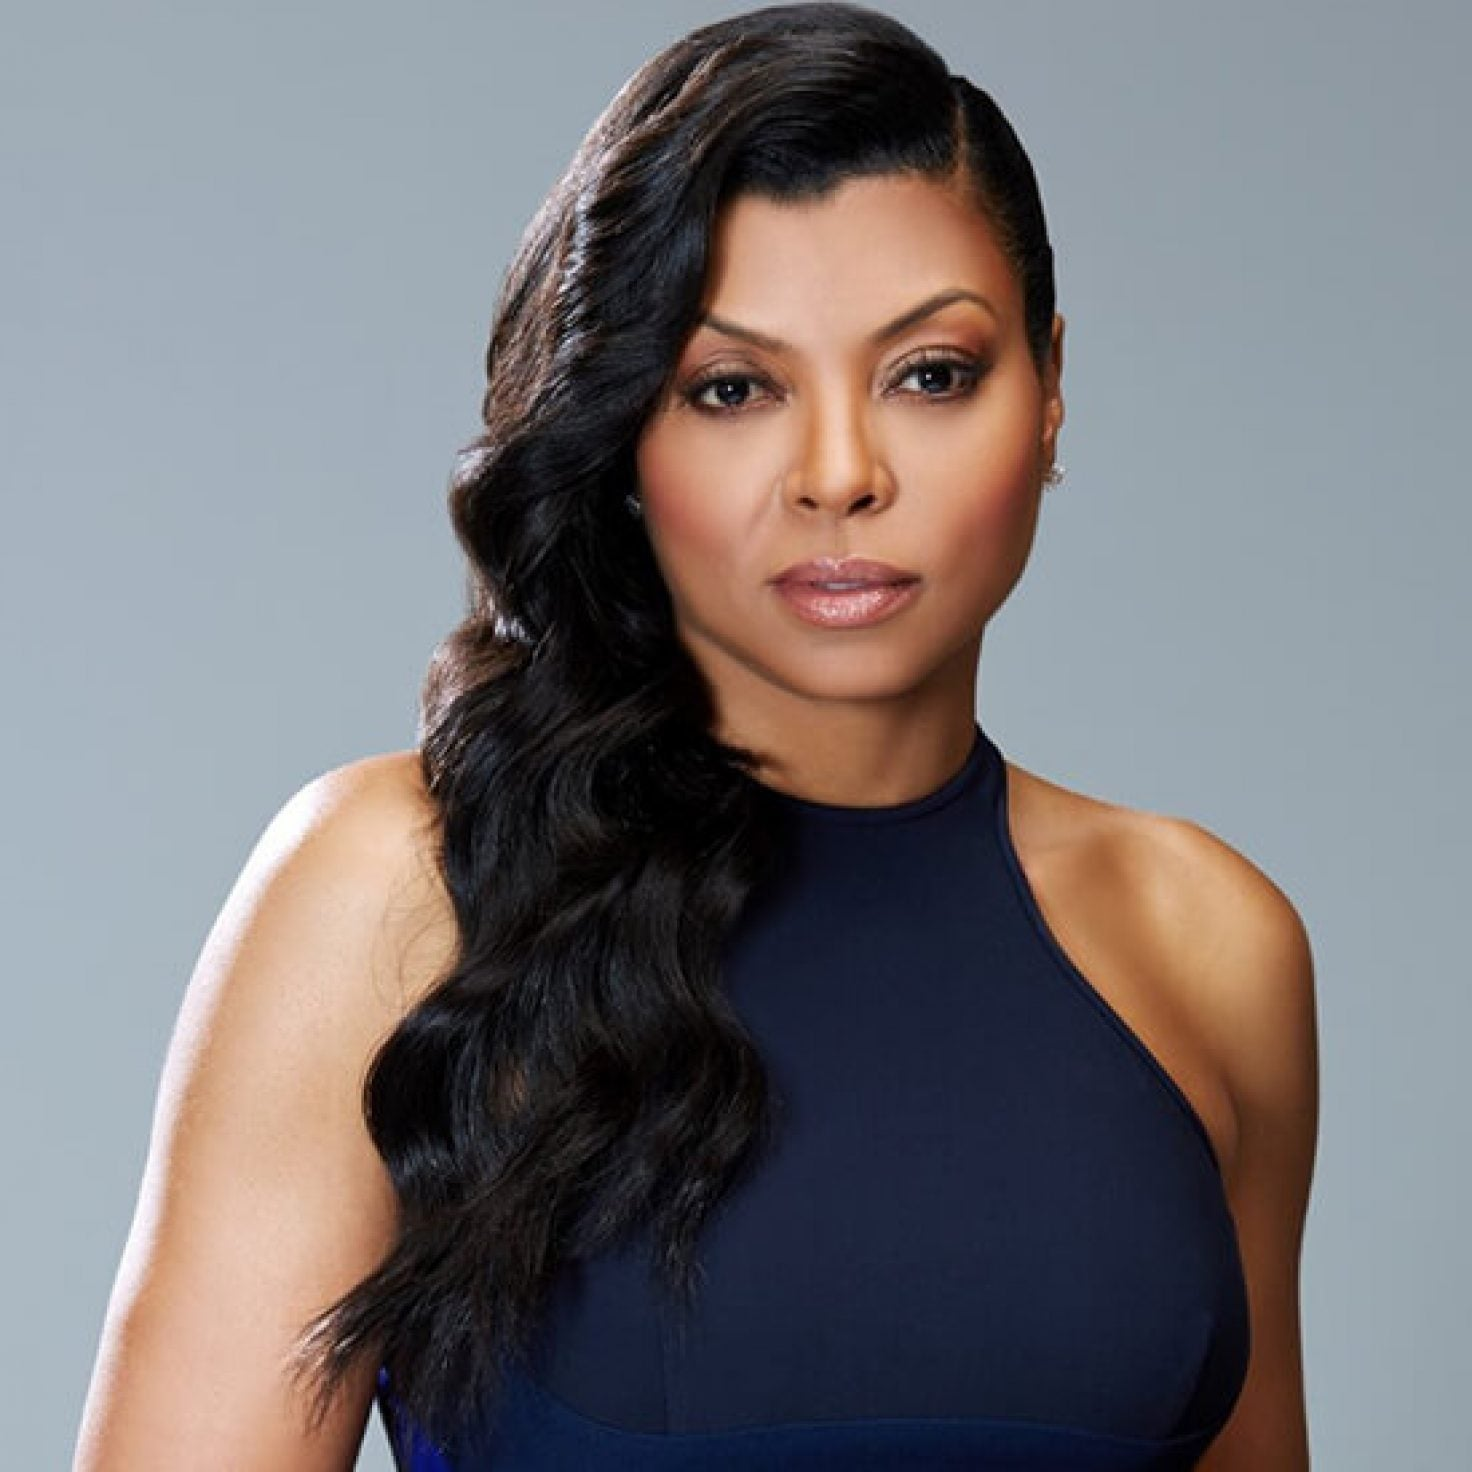 Taraji P. Henson Rides For Megan Thee Stallion: 'We Got Her, I Just Want Her To Keep Winning'